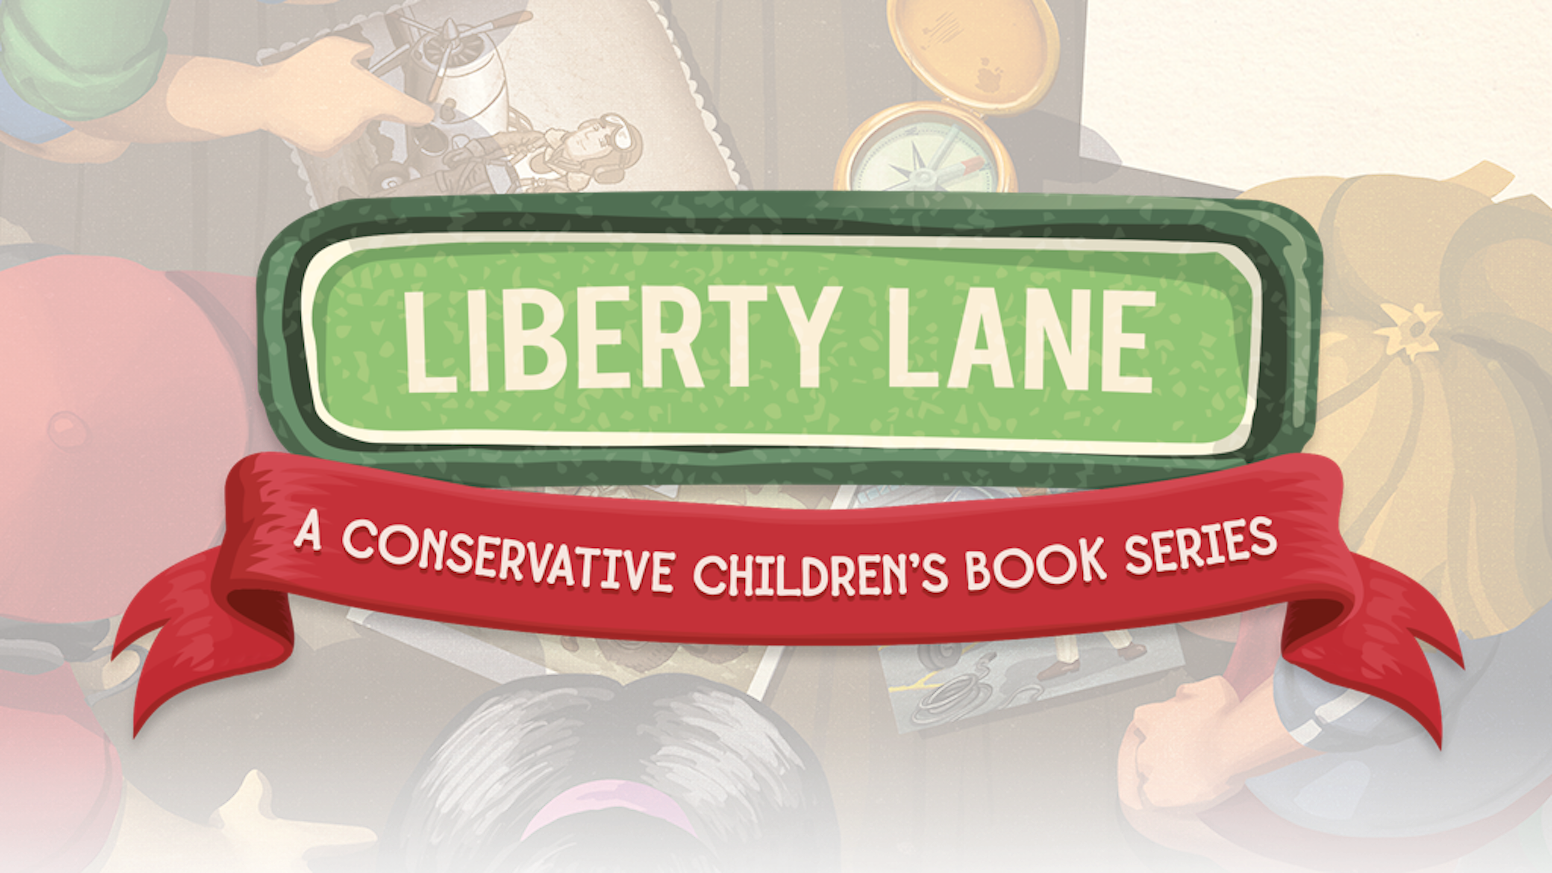 The Liberty Lane series instills values we all share: hard work, personal responsibility, tradition, humility, and patriotism.